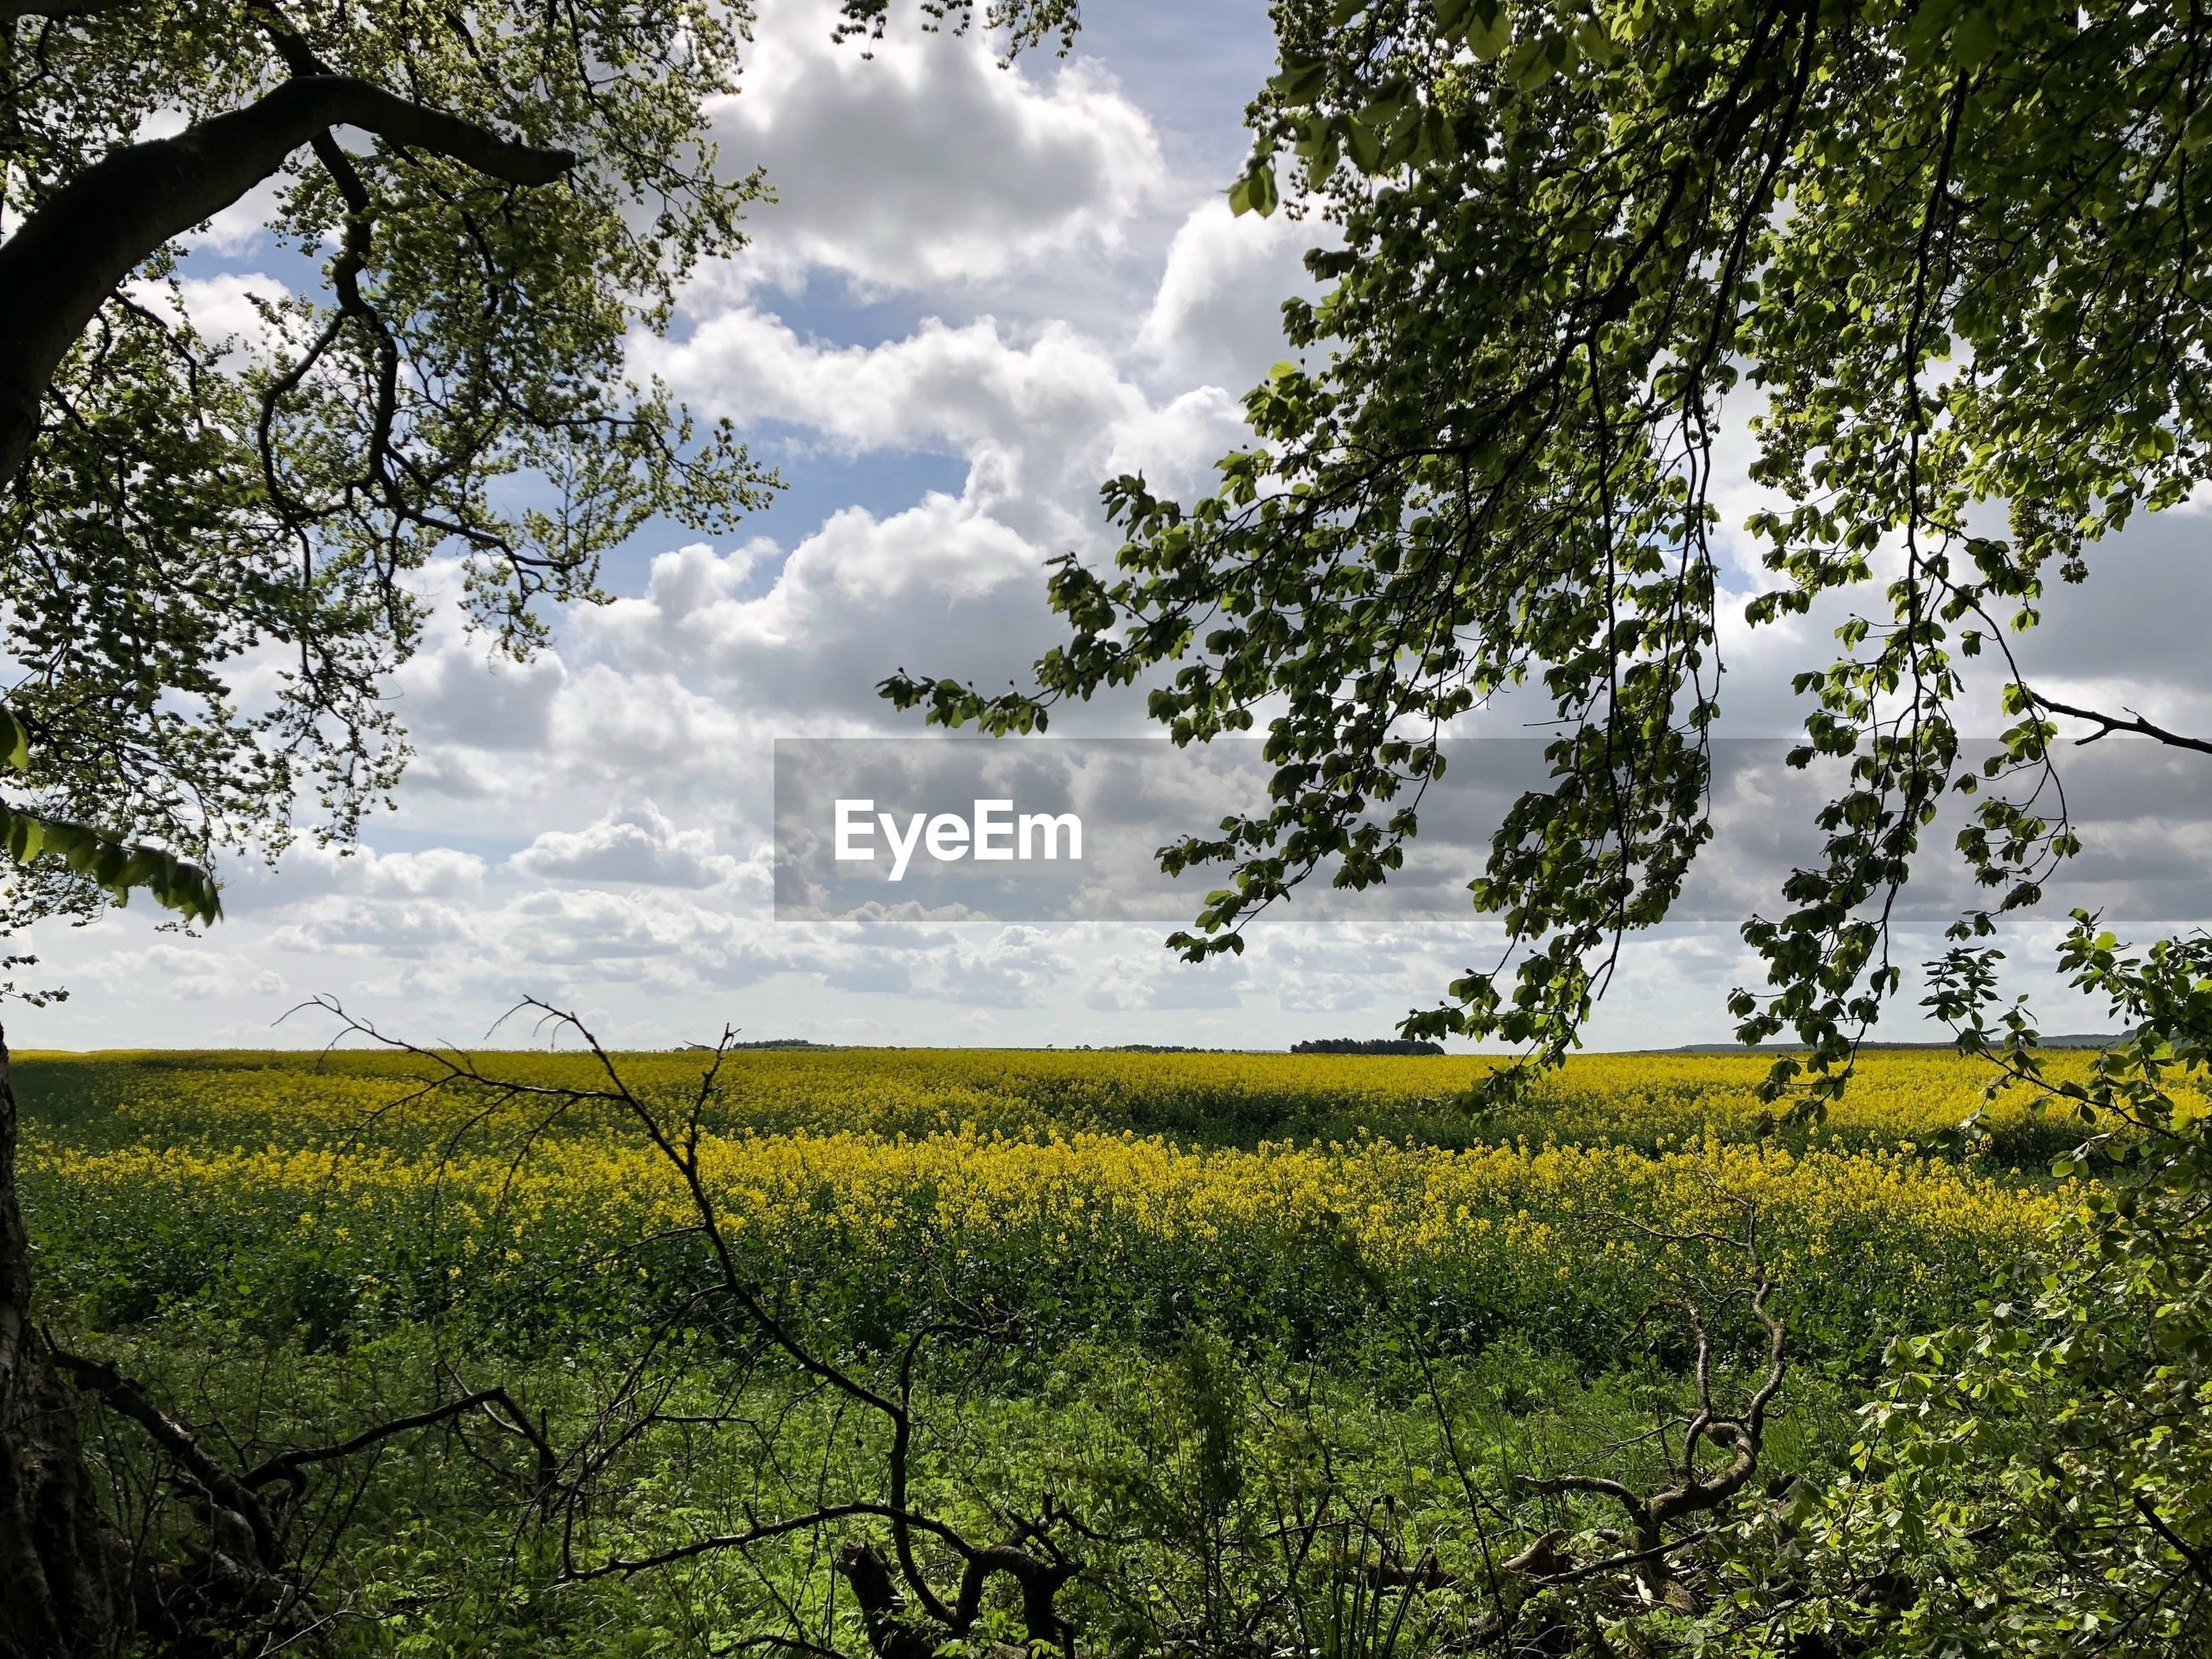 plant, growth, beauty in nature, tree, sky, land, field, tranquility, landscape, cloud - sky, tranquil scene, scenics - nature, environment, flower, nature, yellow, agriculture, no people, flowering plant, rural scene, outdoors